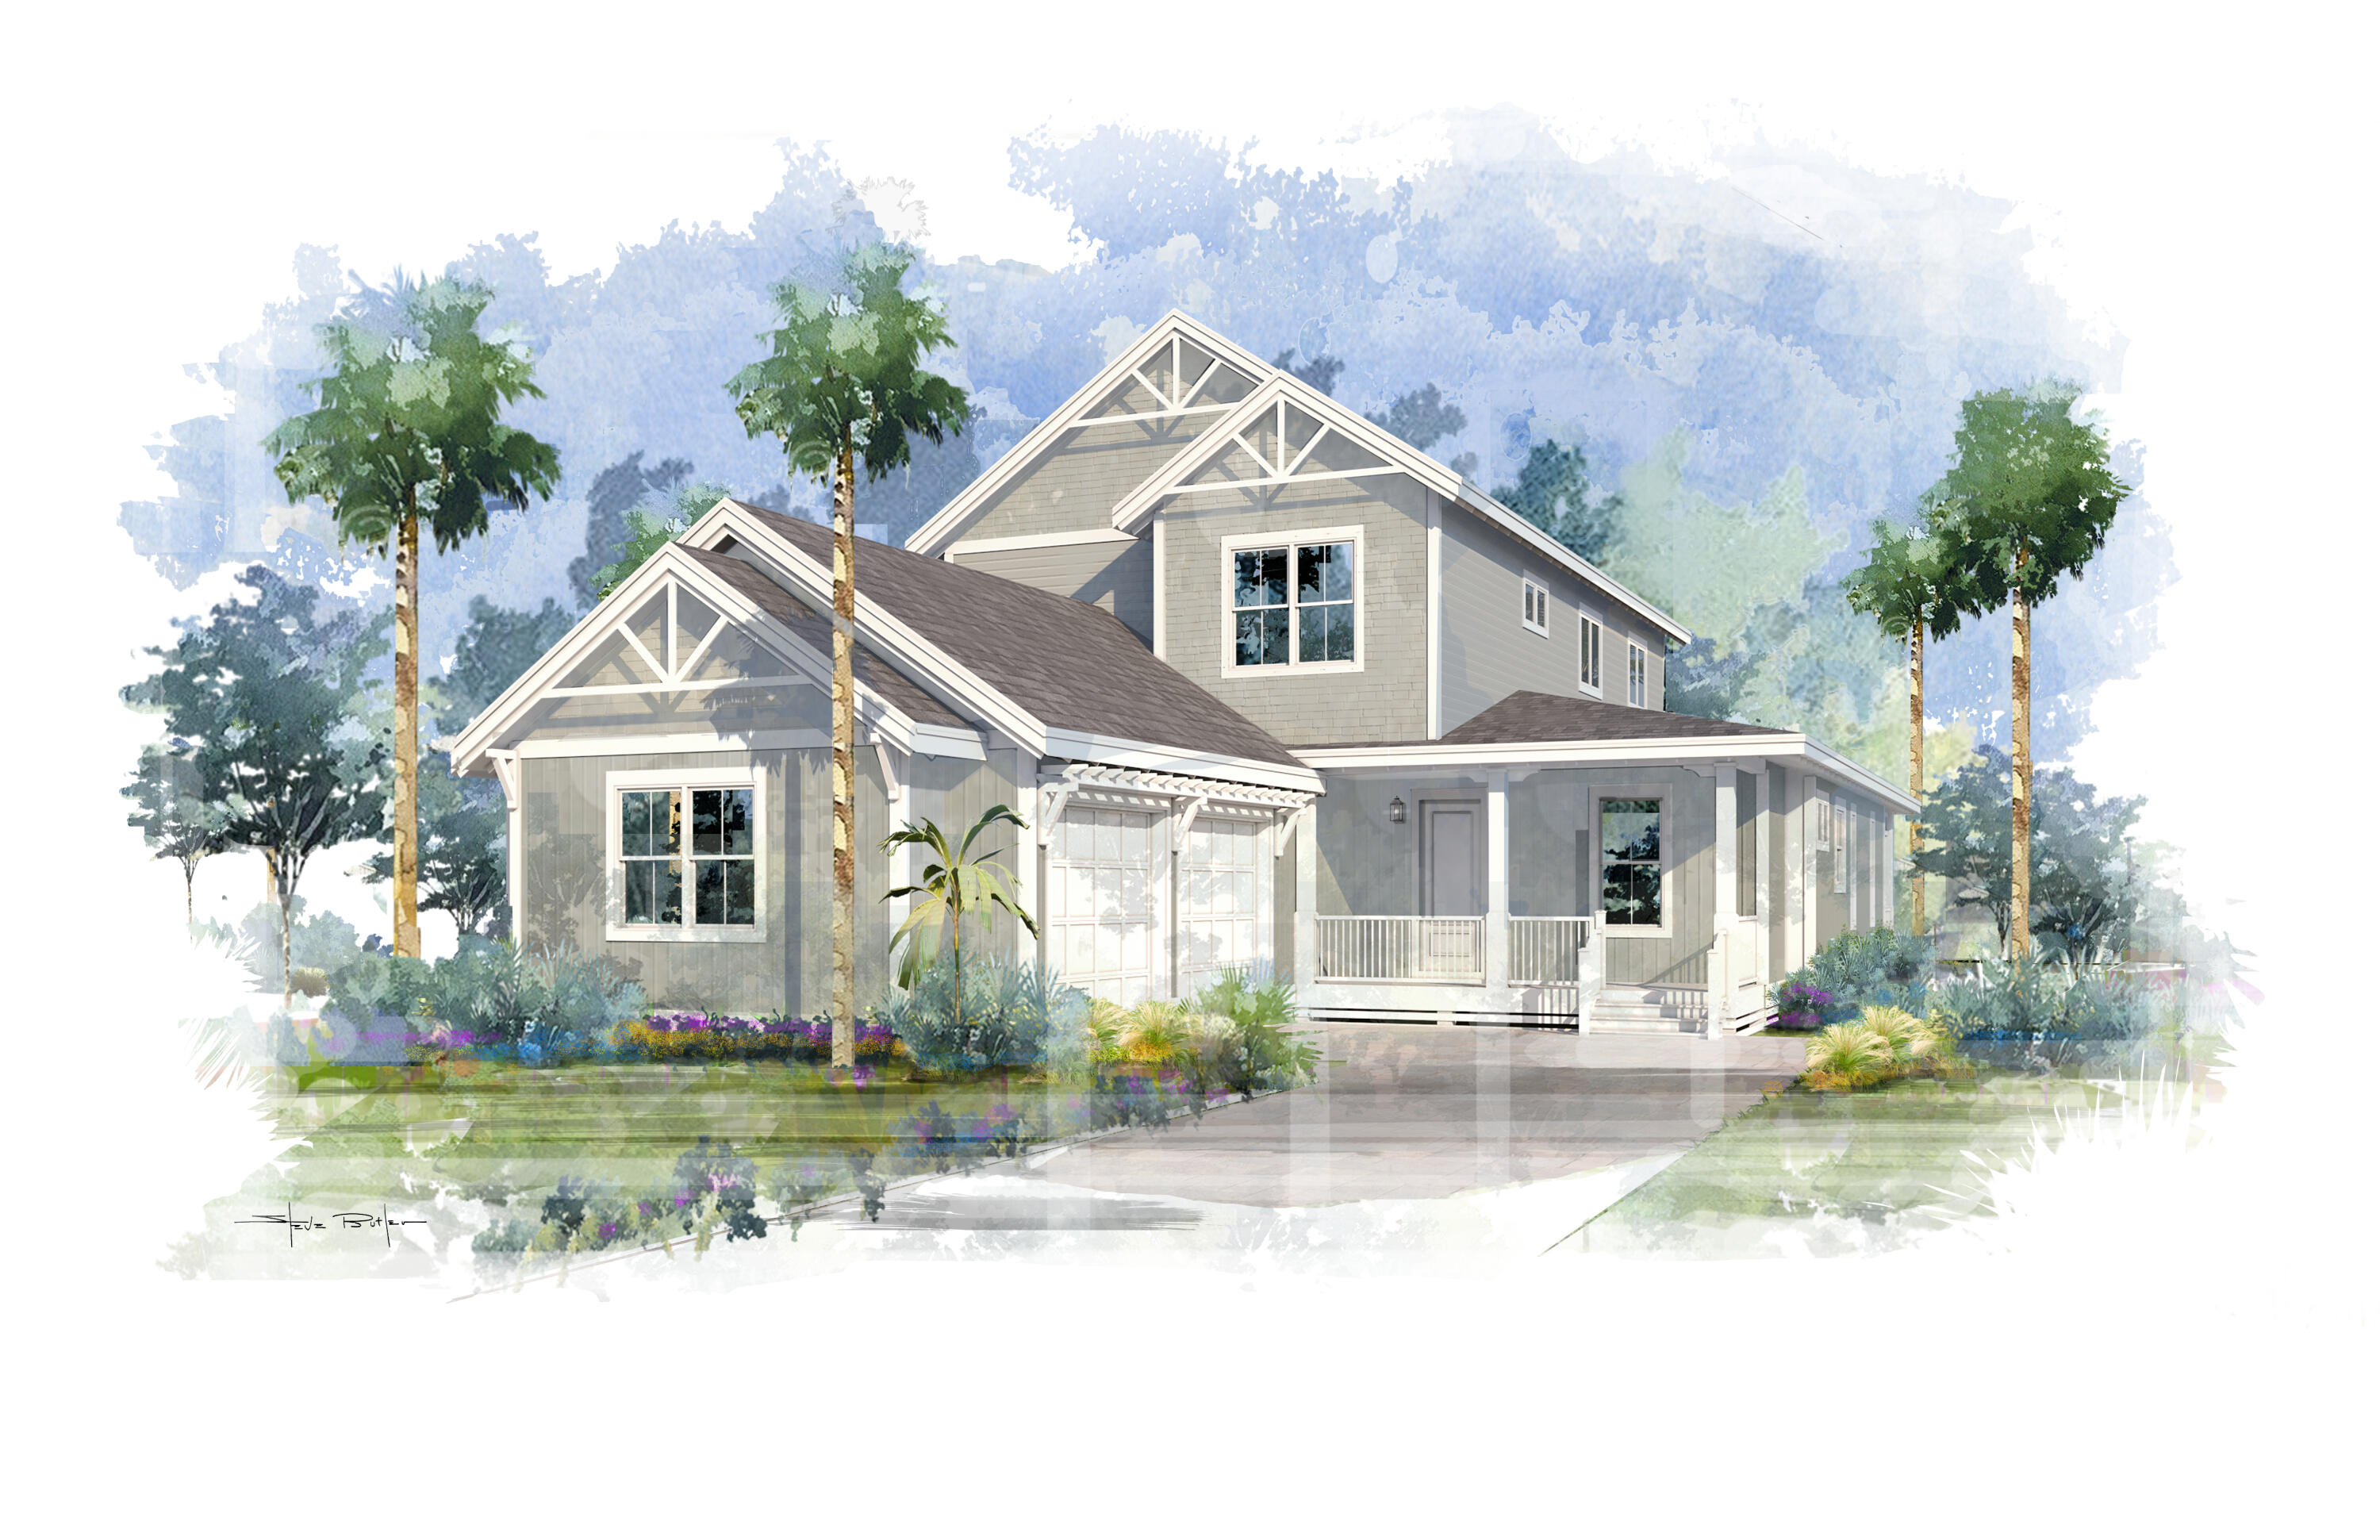 Discover the unique charm of WaterSound West Beach at this NEW construction 4BR/4BA coastal cottage